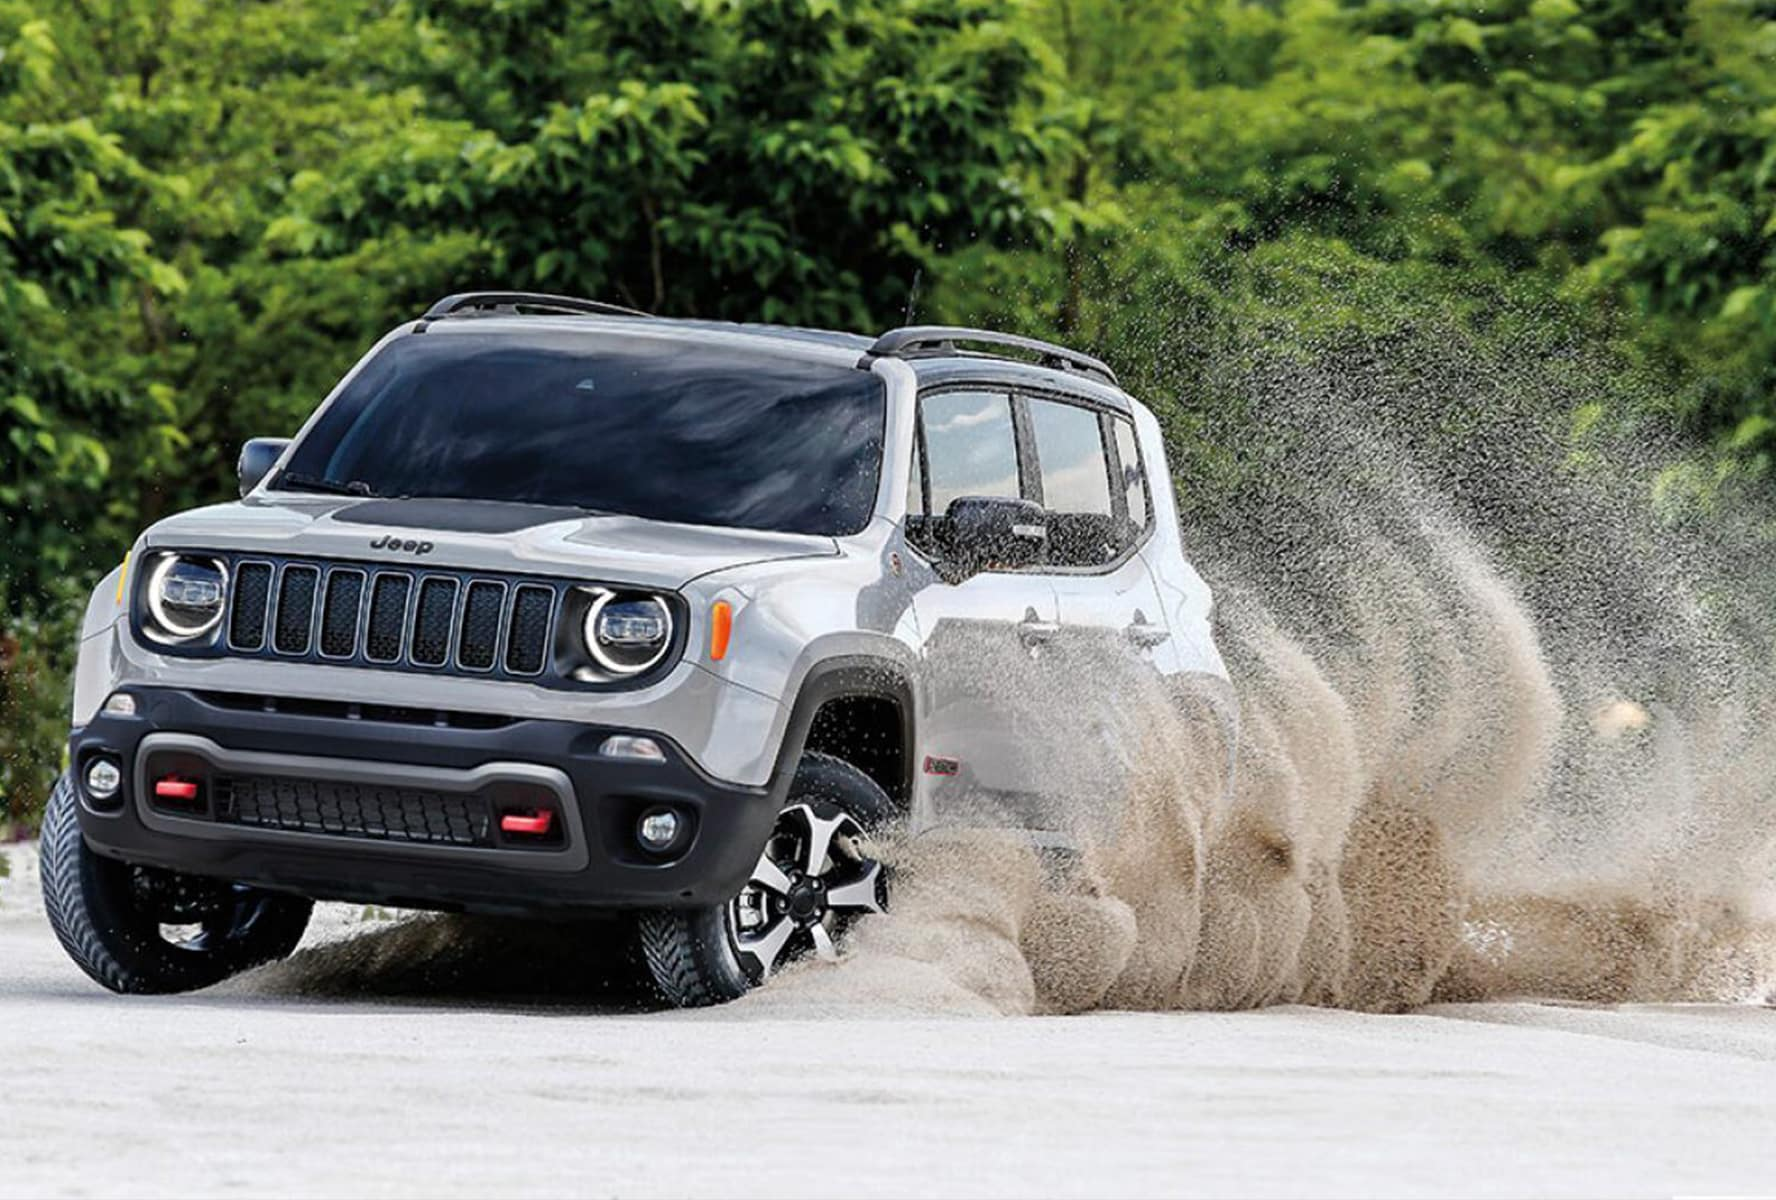 2019 Jeep Renegade safety near Cincinnati, OH